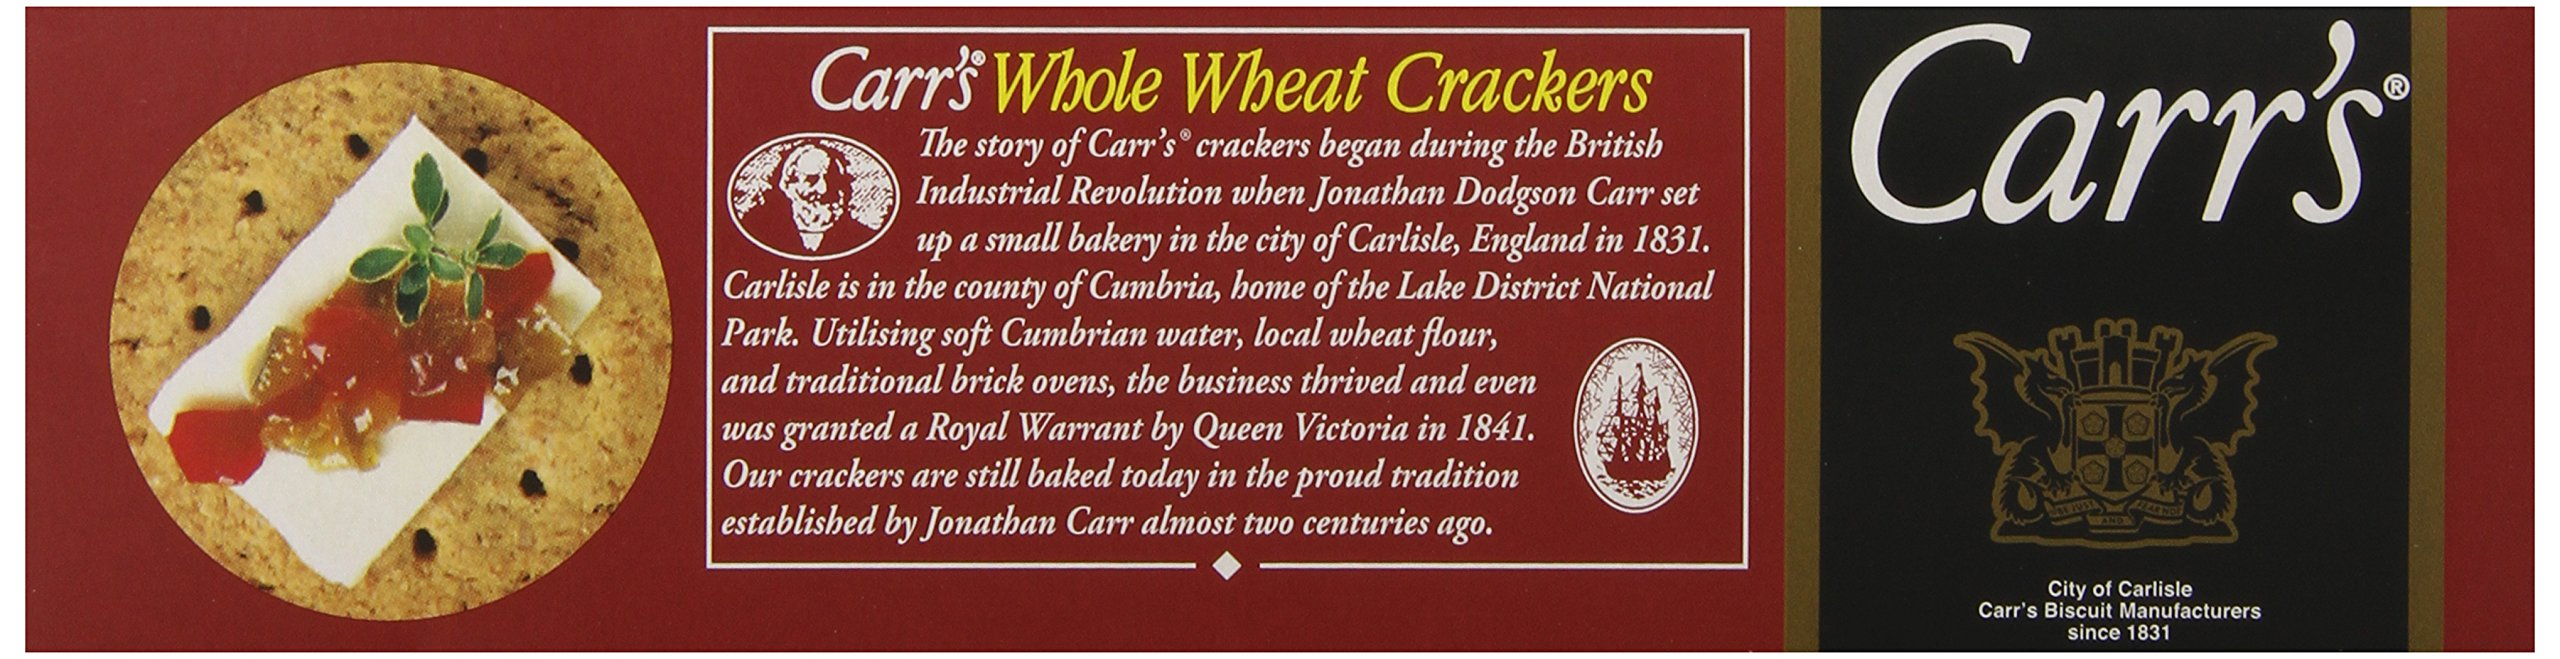 Carr's Whole Wheat Crackers, 7-Ounce Boxes (Pack of 6) by Carr's (Image #4)